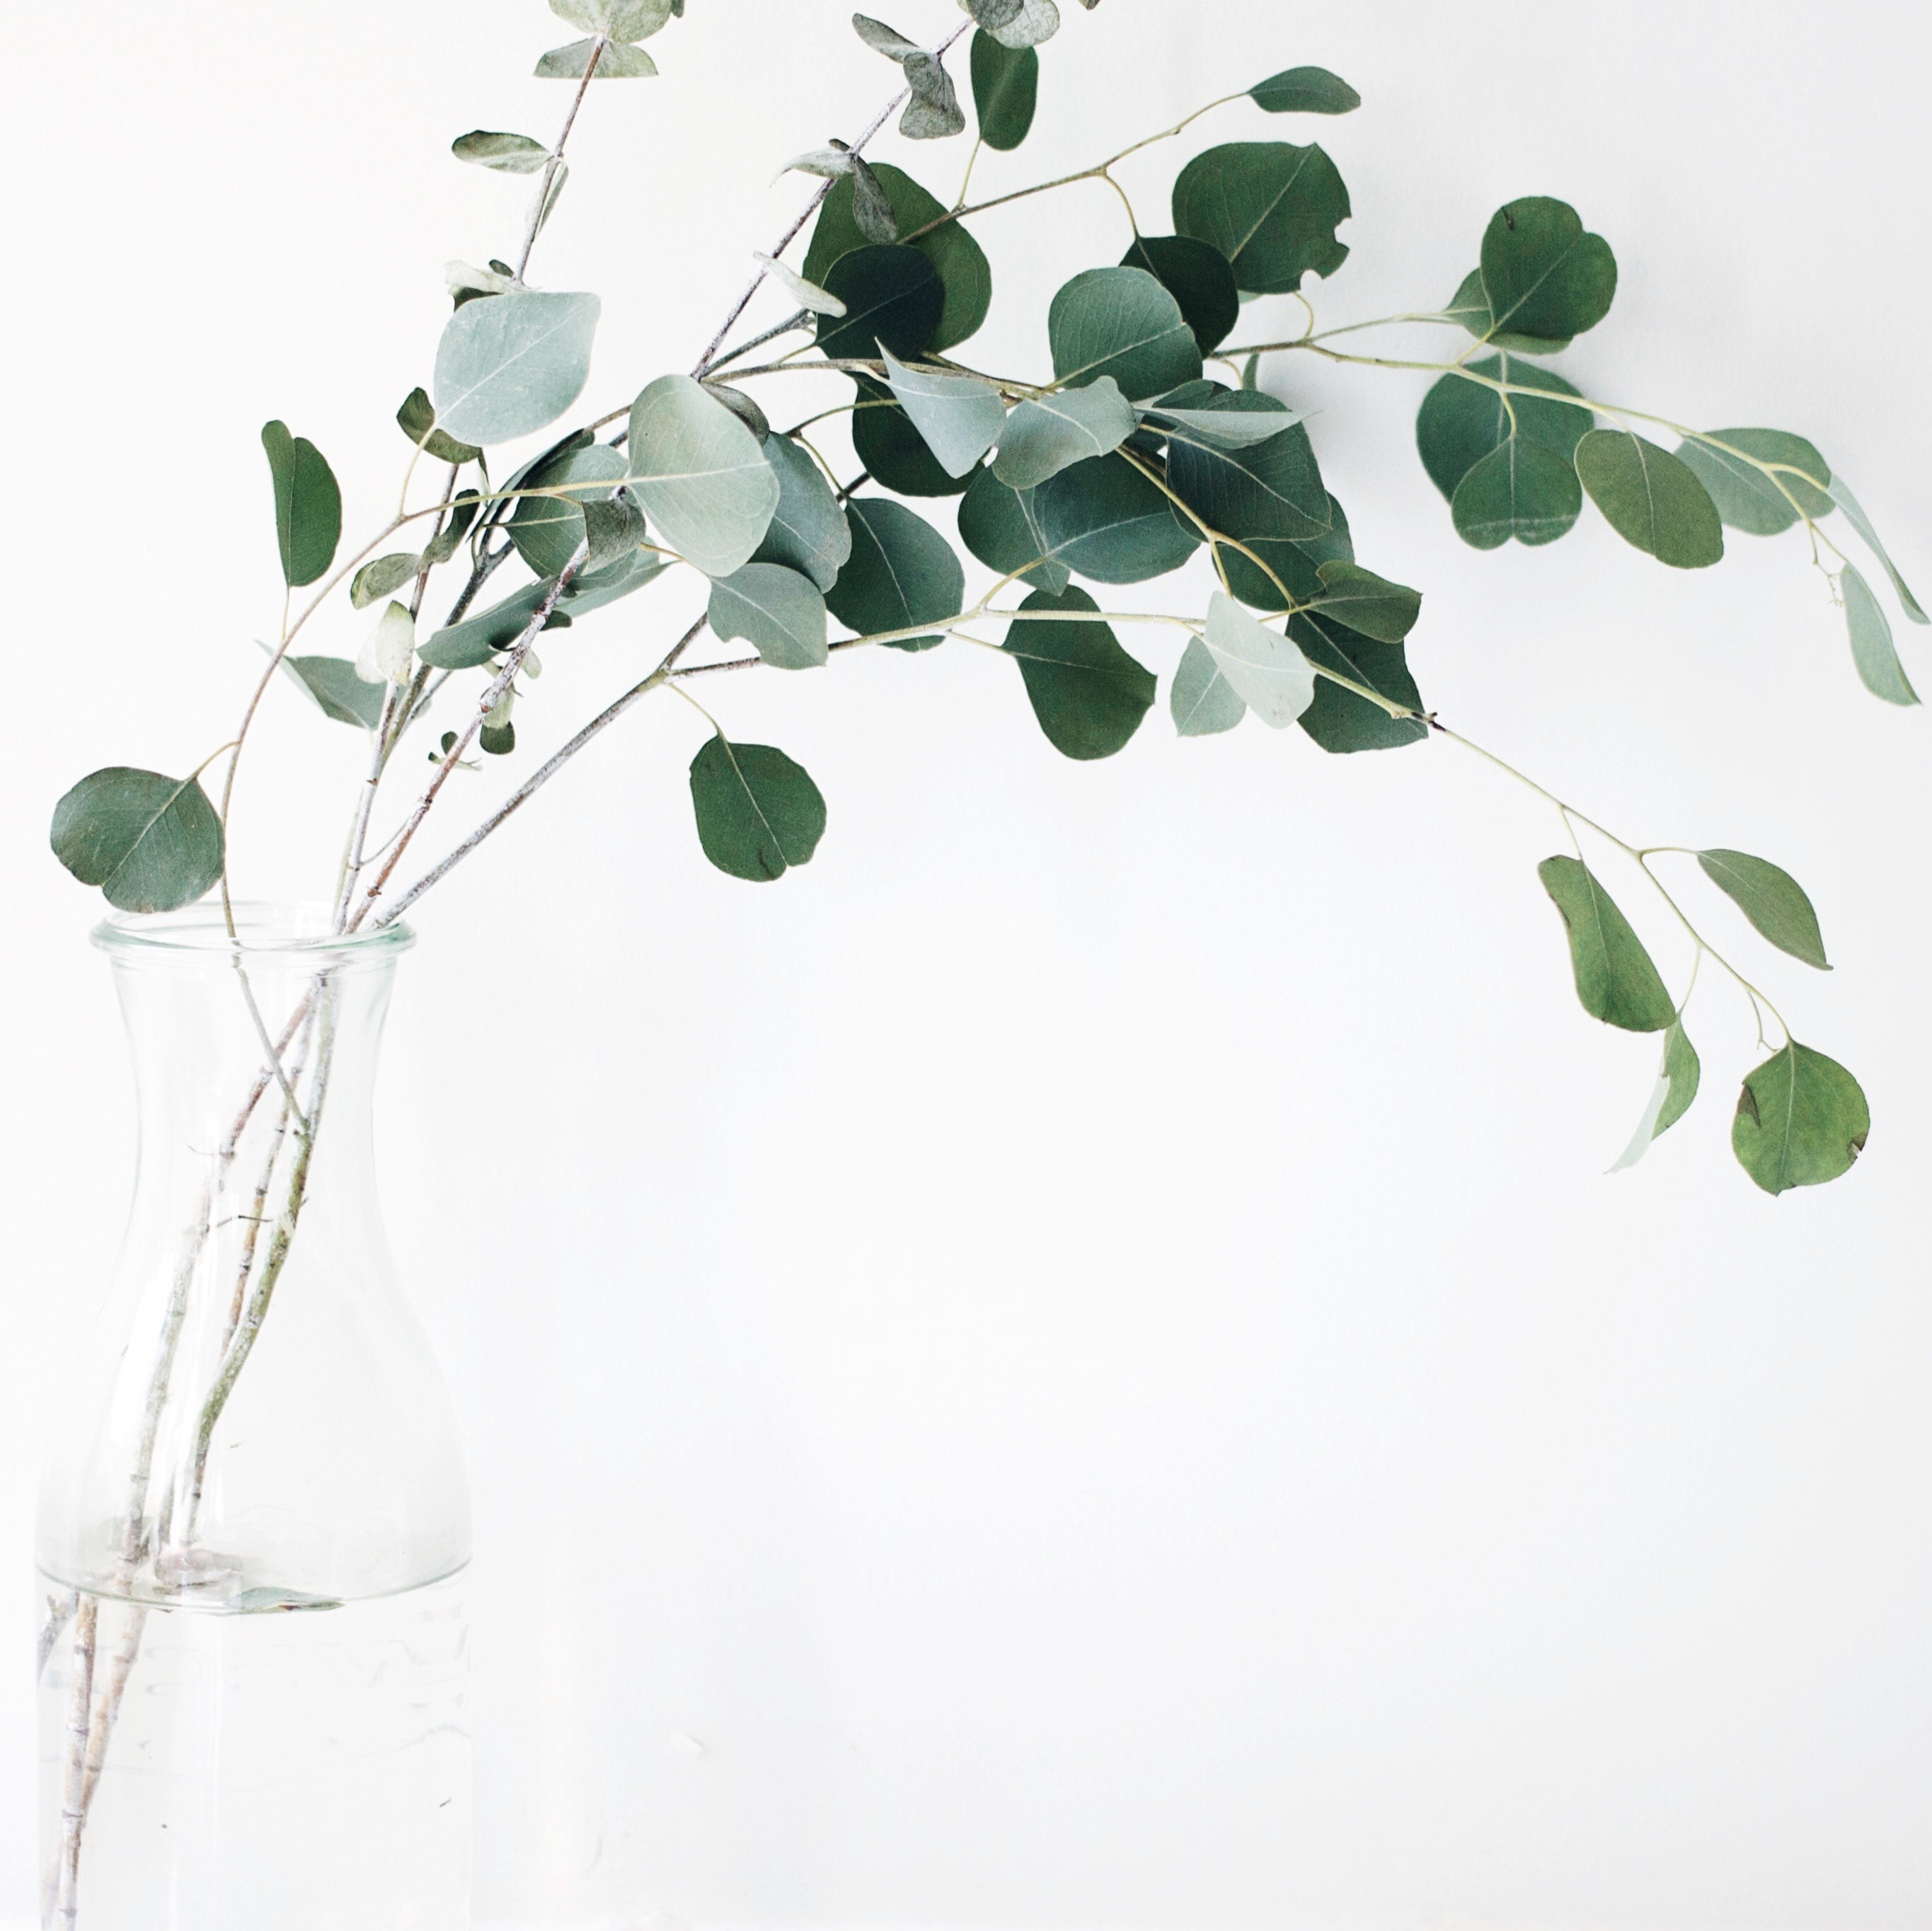 Green plant leaves in a vase